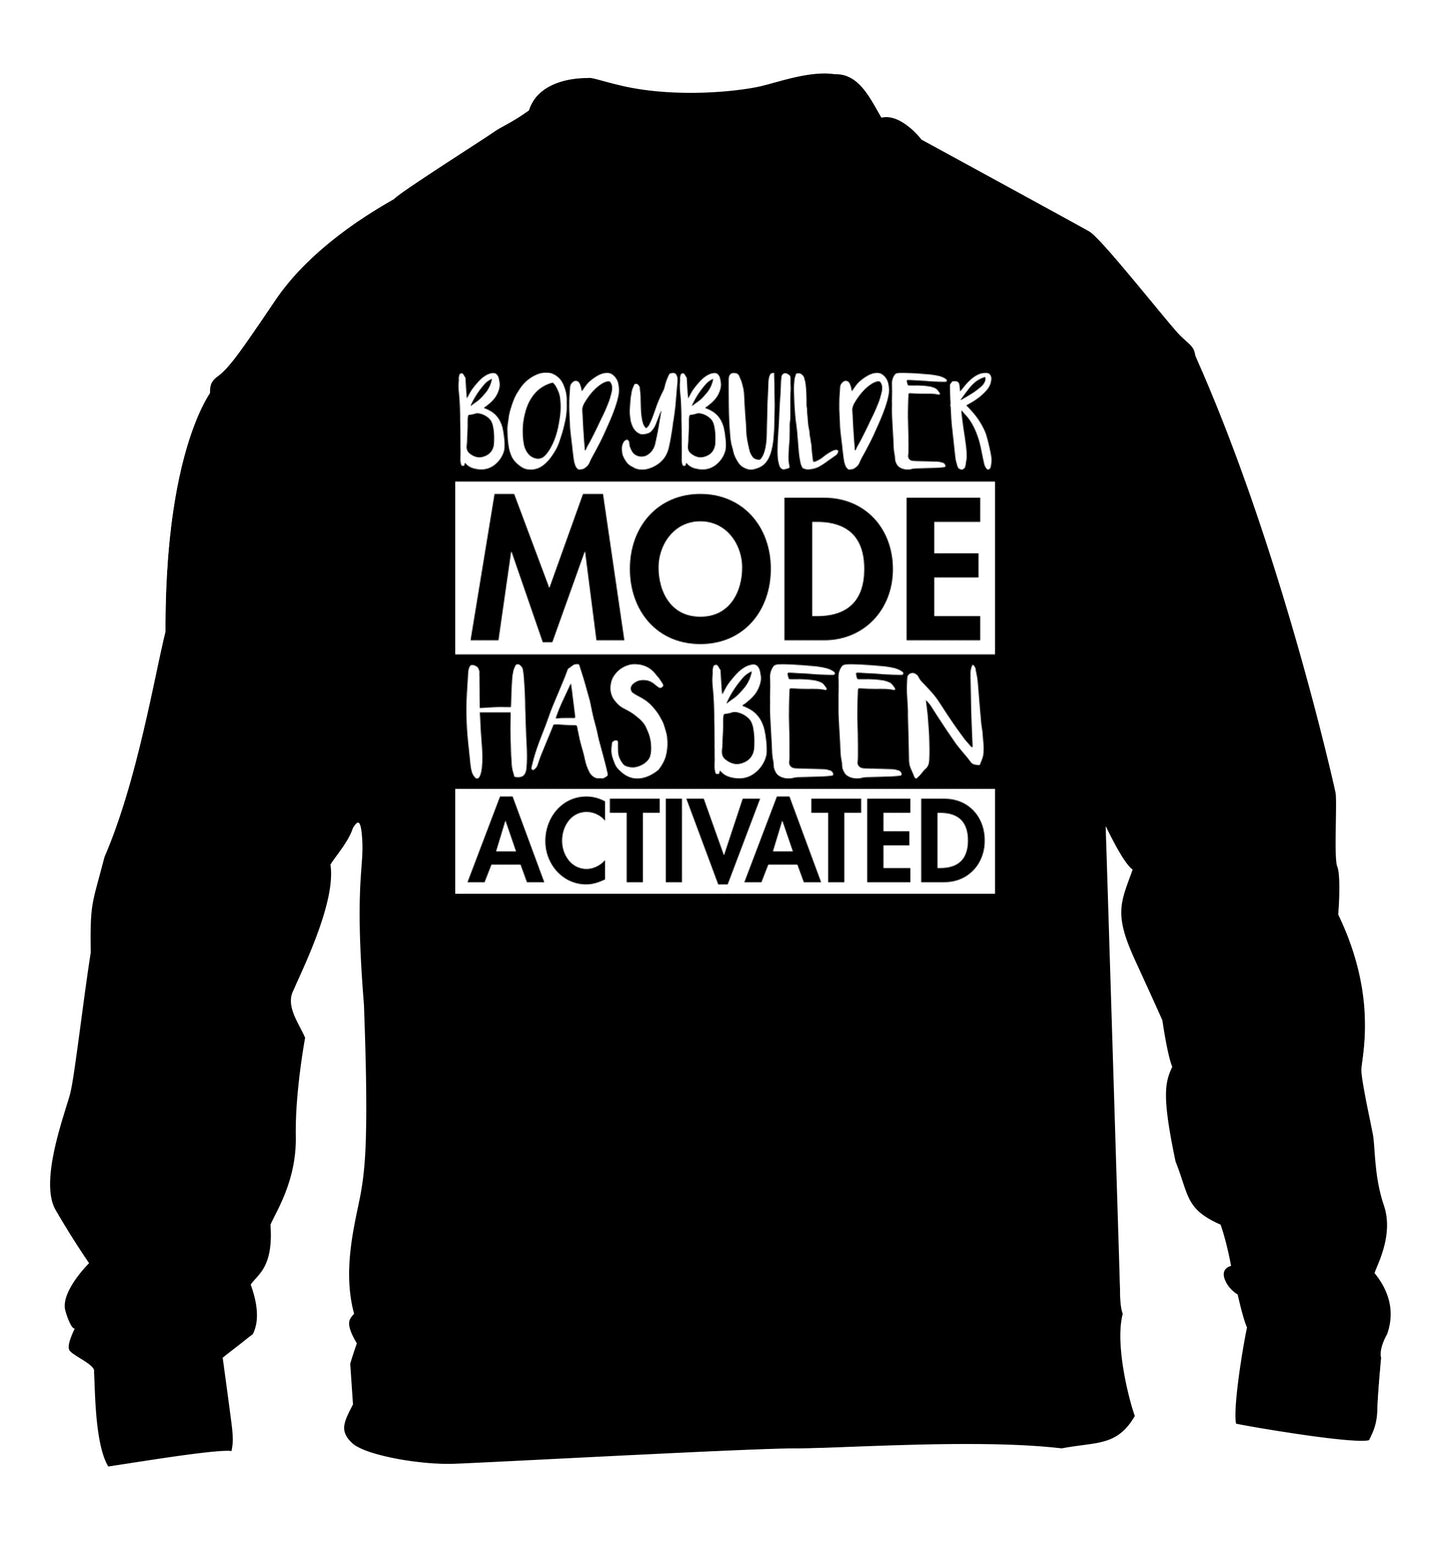 Bodybuilder mode activated children's black sweater 12-14 Years